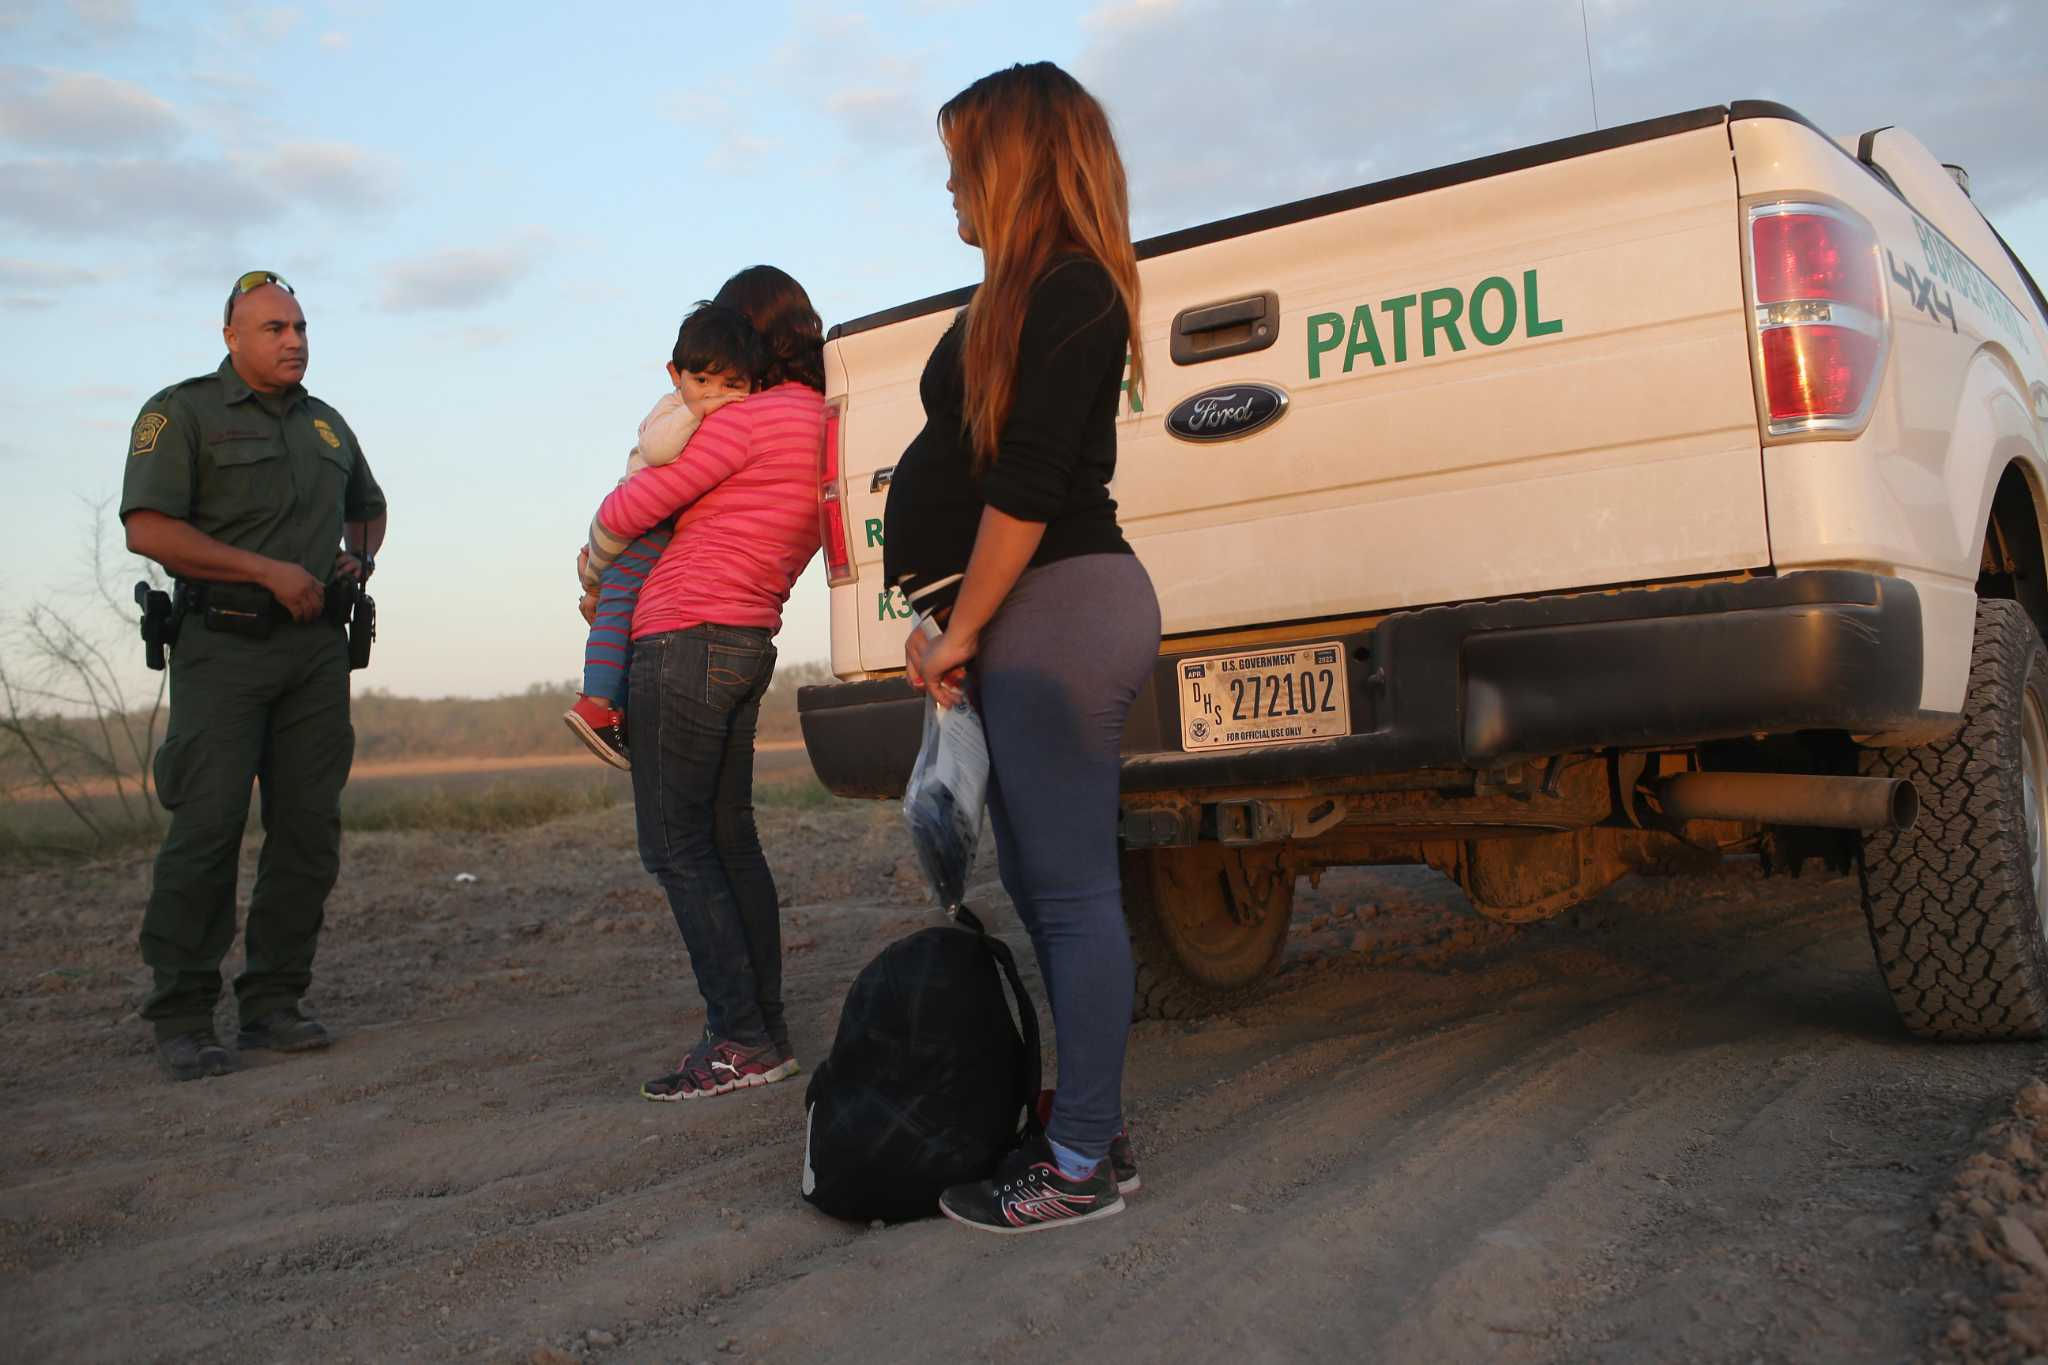 Detaining Pregnant Immigrants: Is this necessary at all?